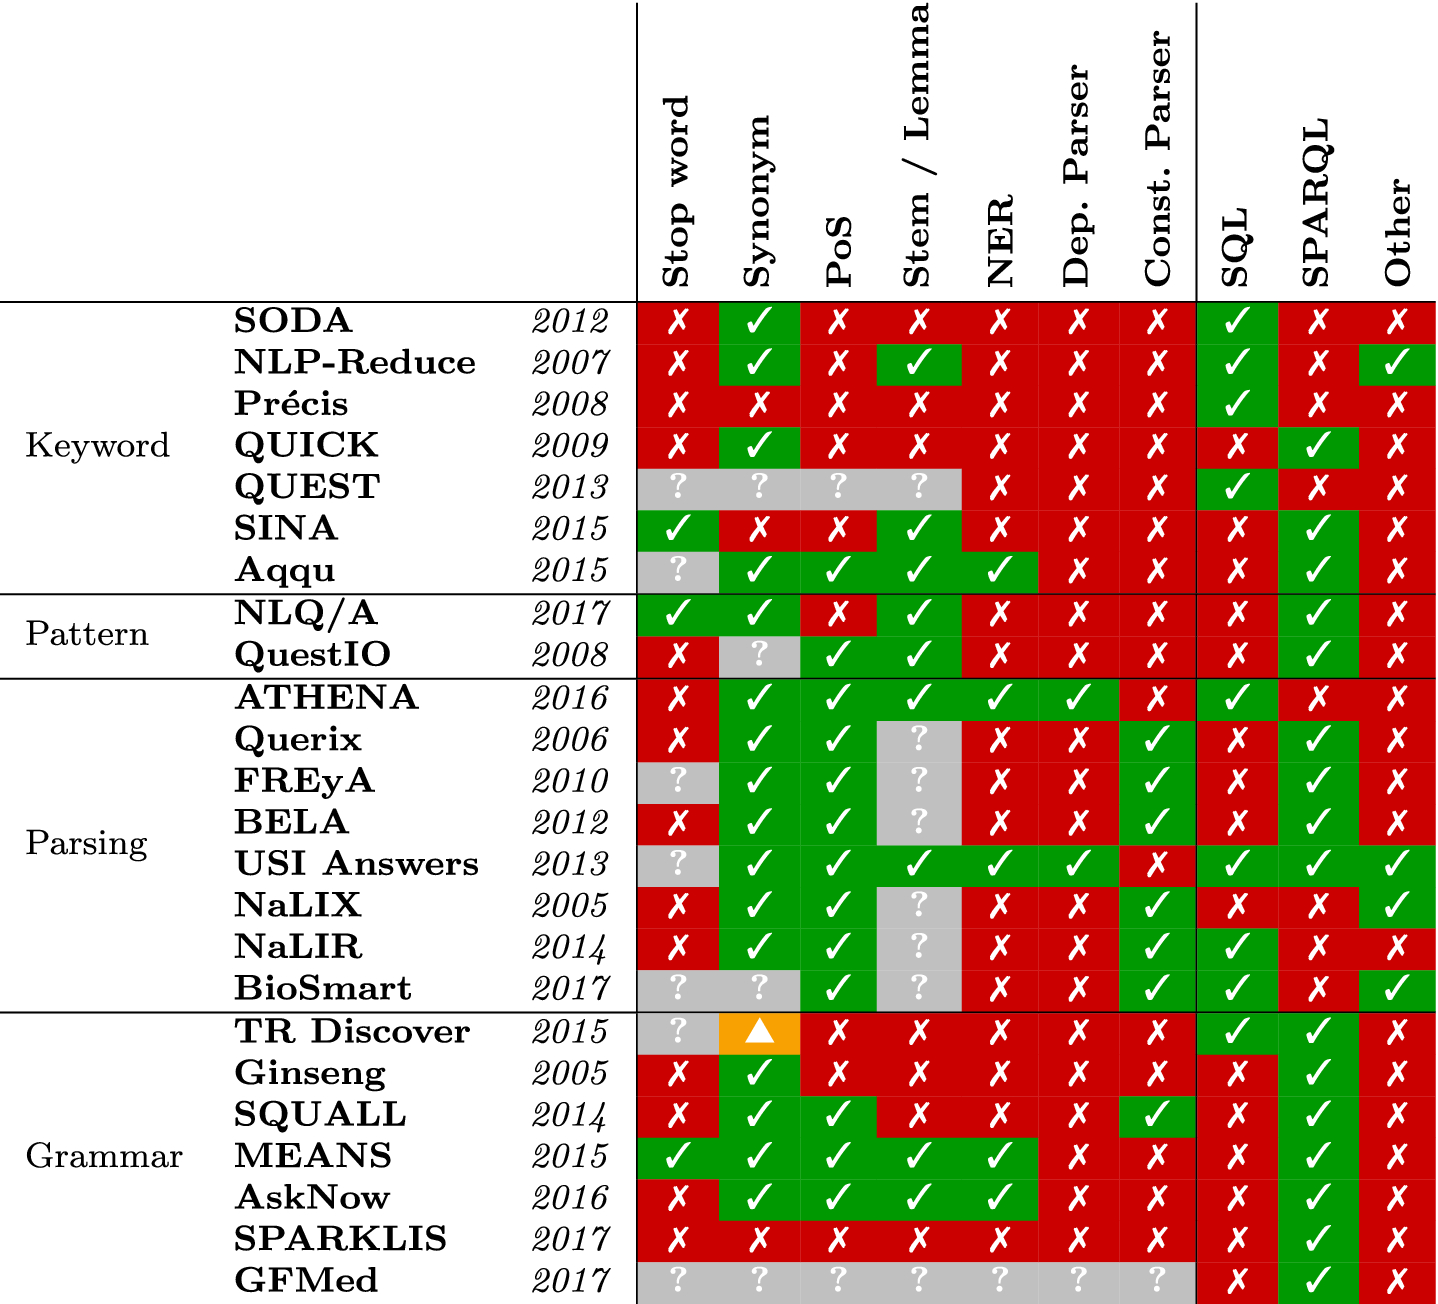 https://static-content.springer.com/image/art%3A10.1007%2Fs00778-019-00567-8/MediaObjects/778_2019_567_Tab2_HTML.png